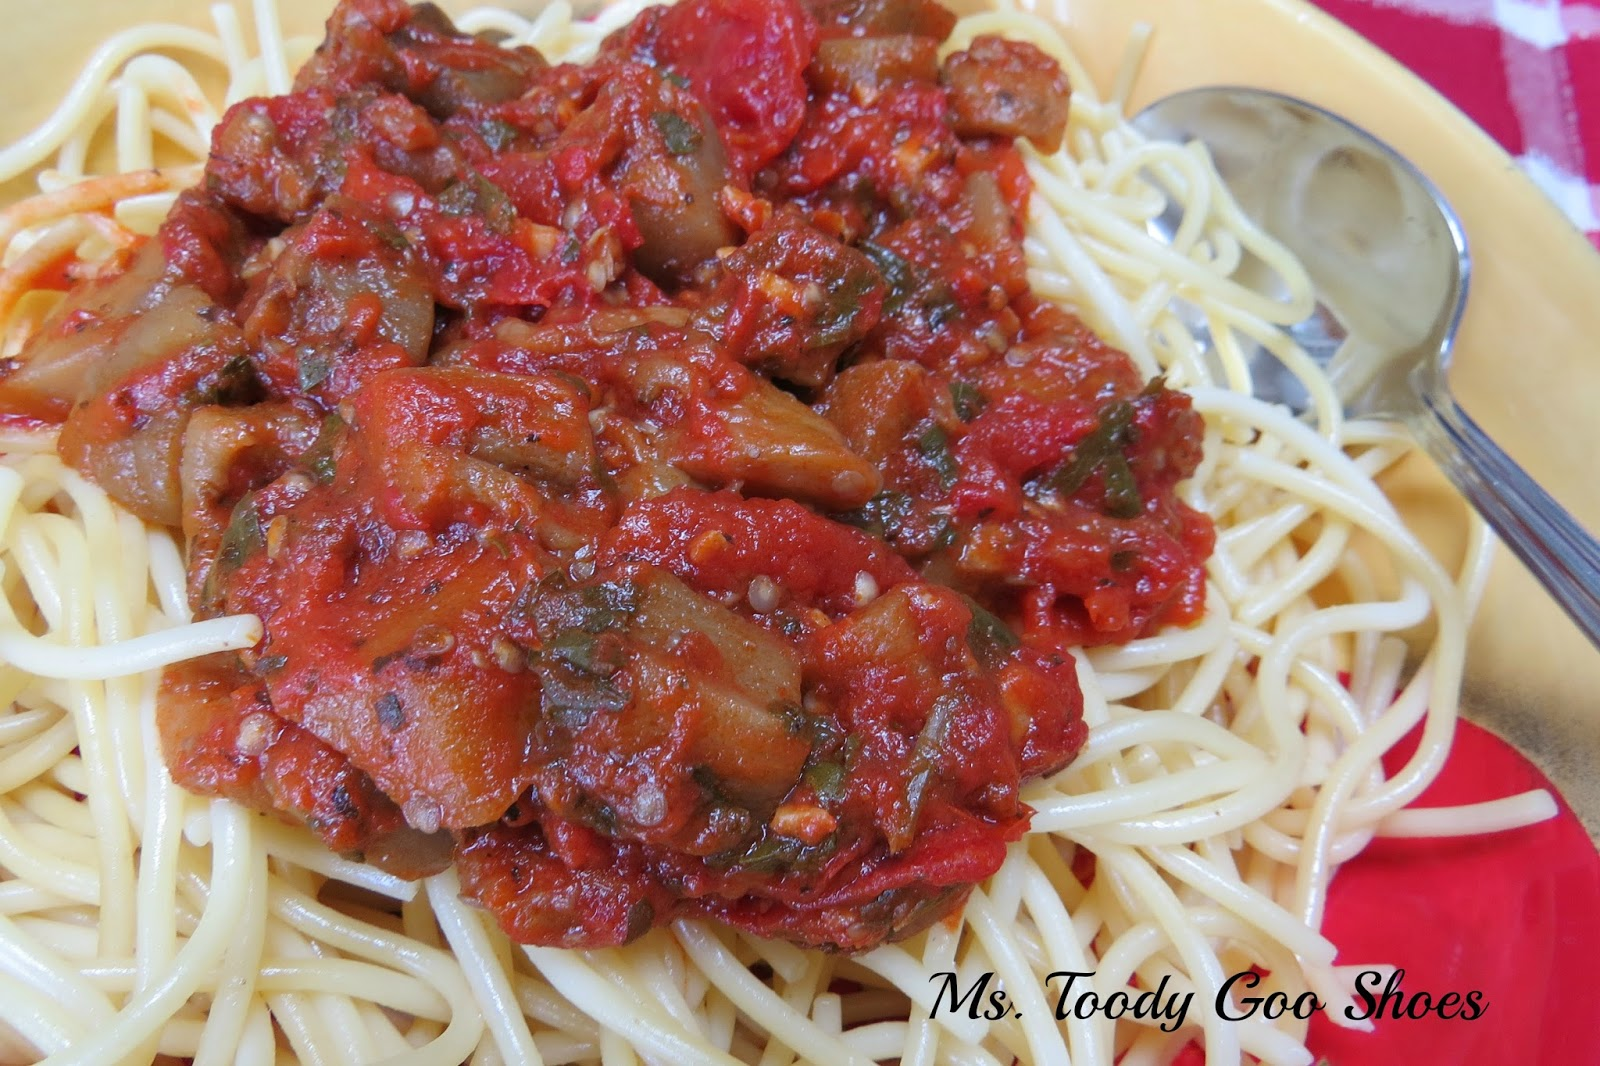 Spaghetti with Eggplant Sauce - Perfect for a winter night - by Ms. Toody Goo Shoes